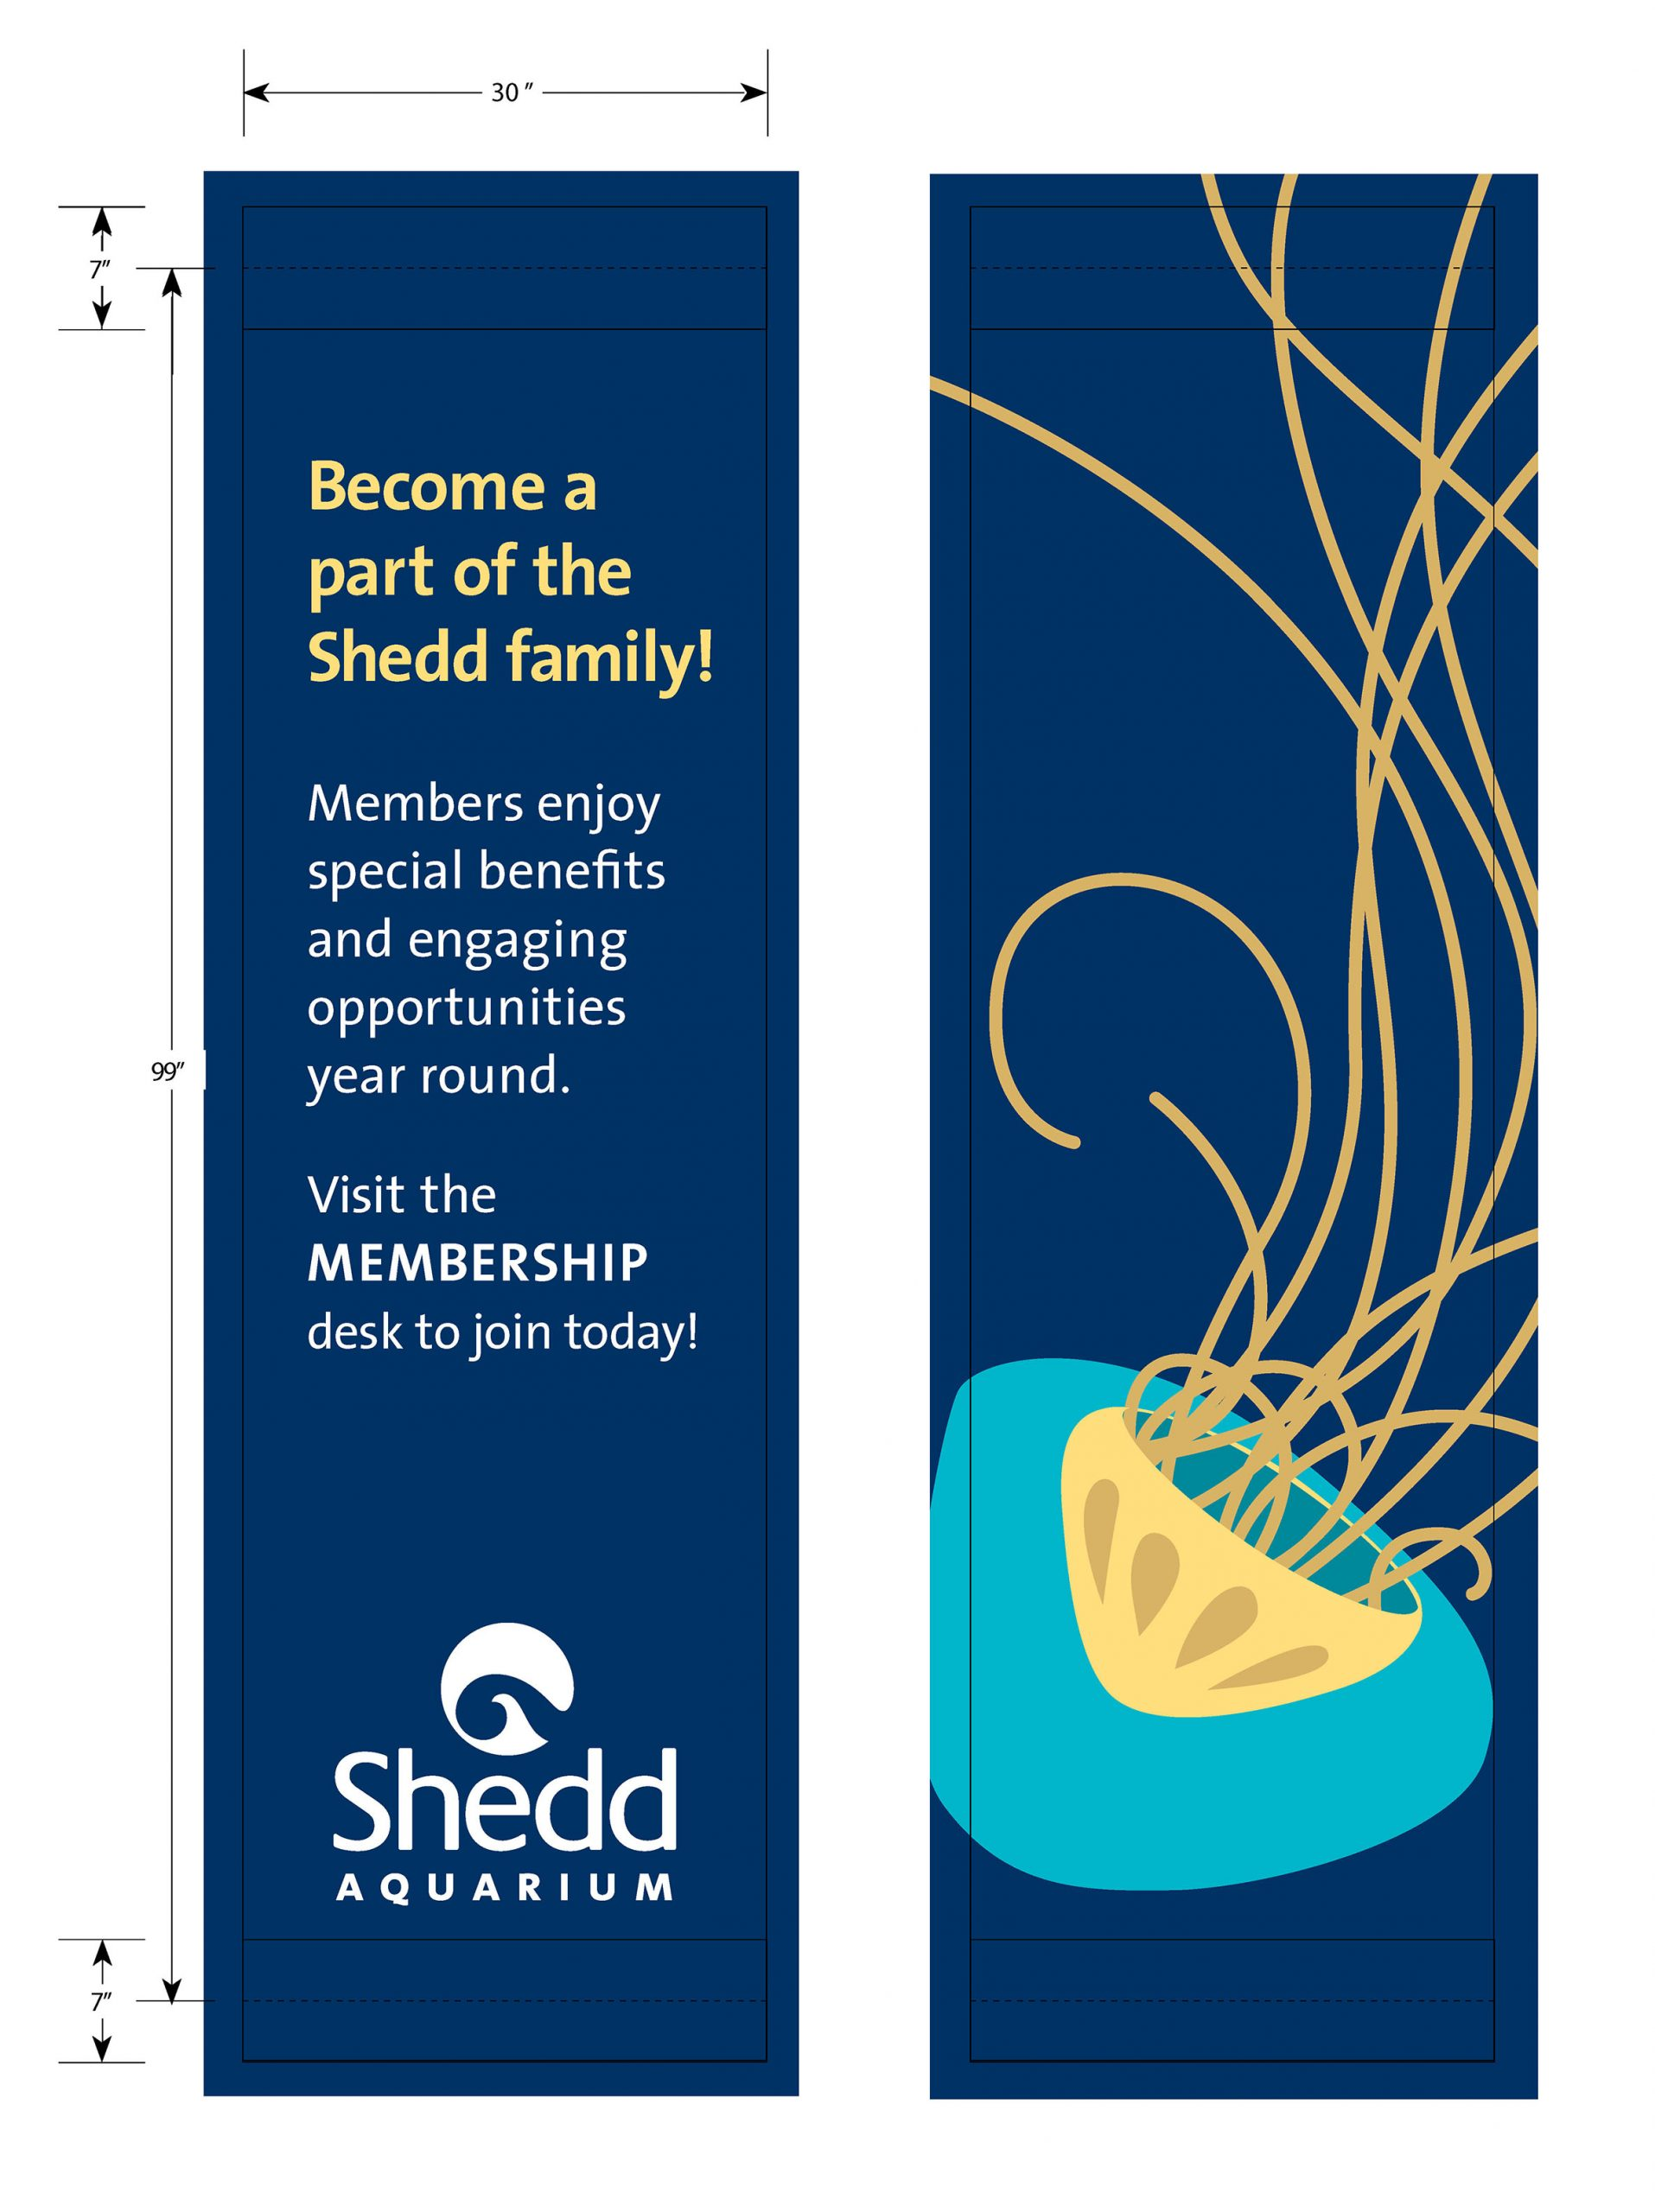 A set of street banners. The left one shows information about memberships, and the right one depicts a stylized illustrated jellyfish in teal and yellow over navy blue.